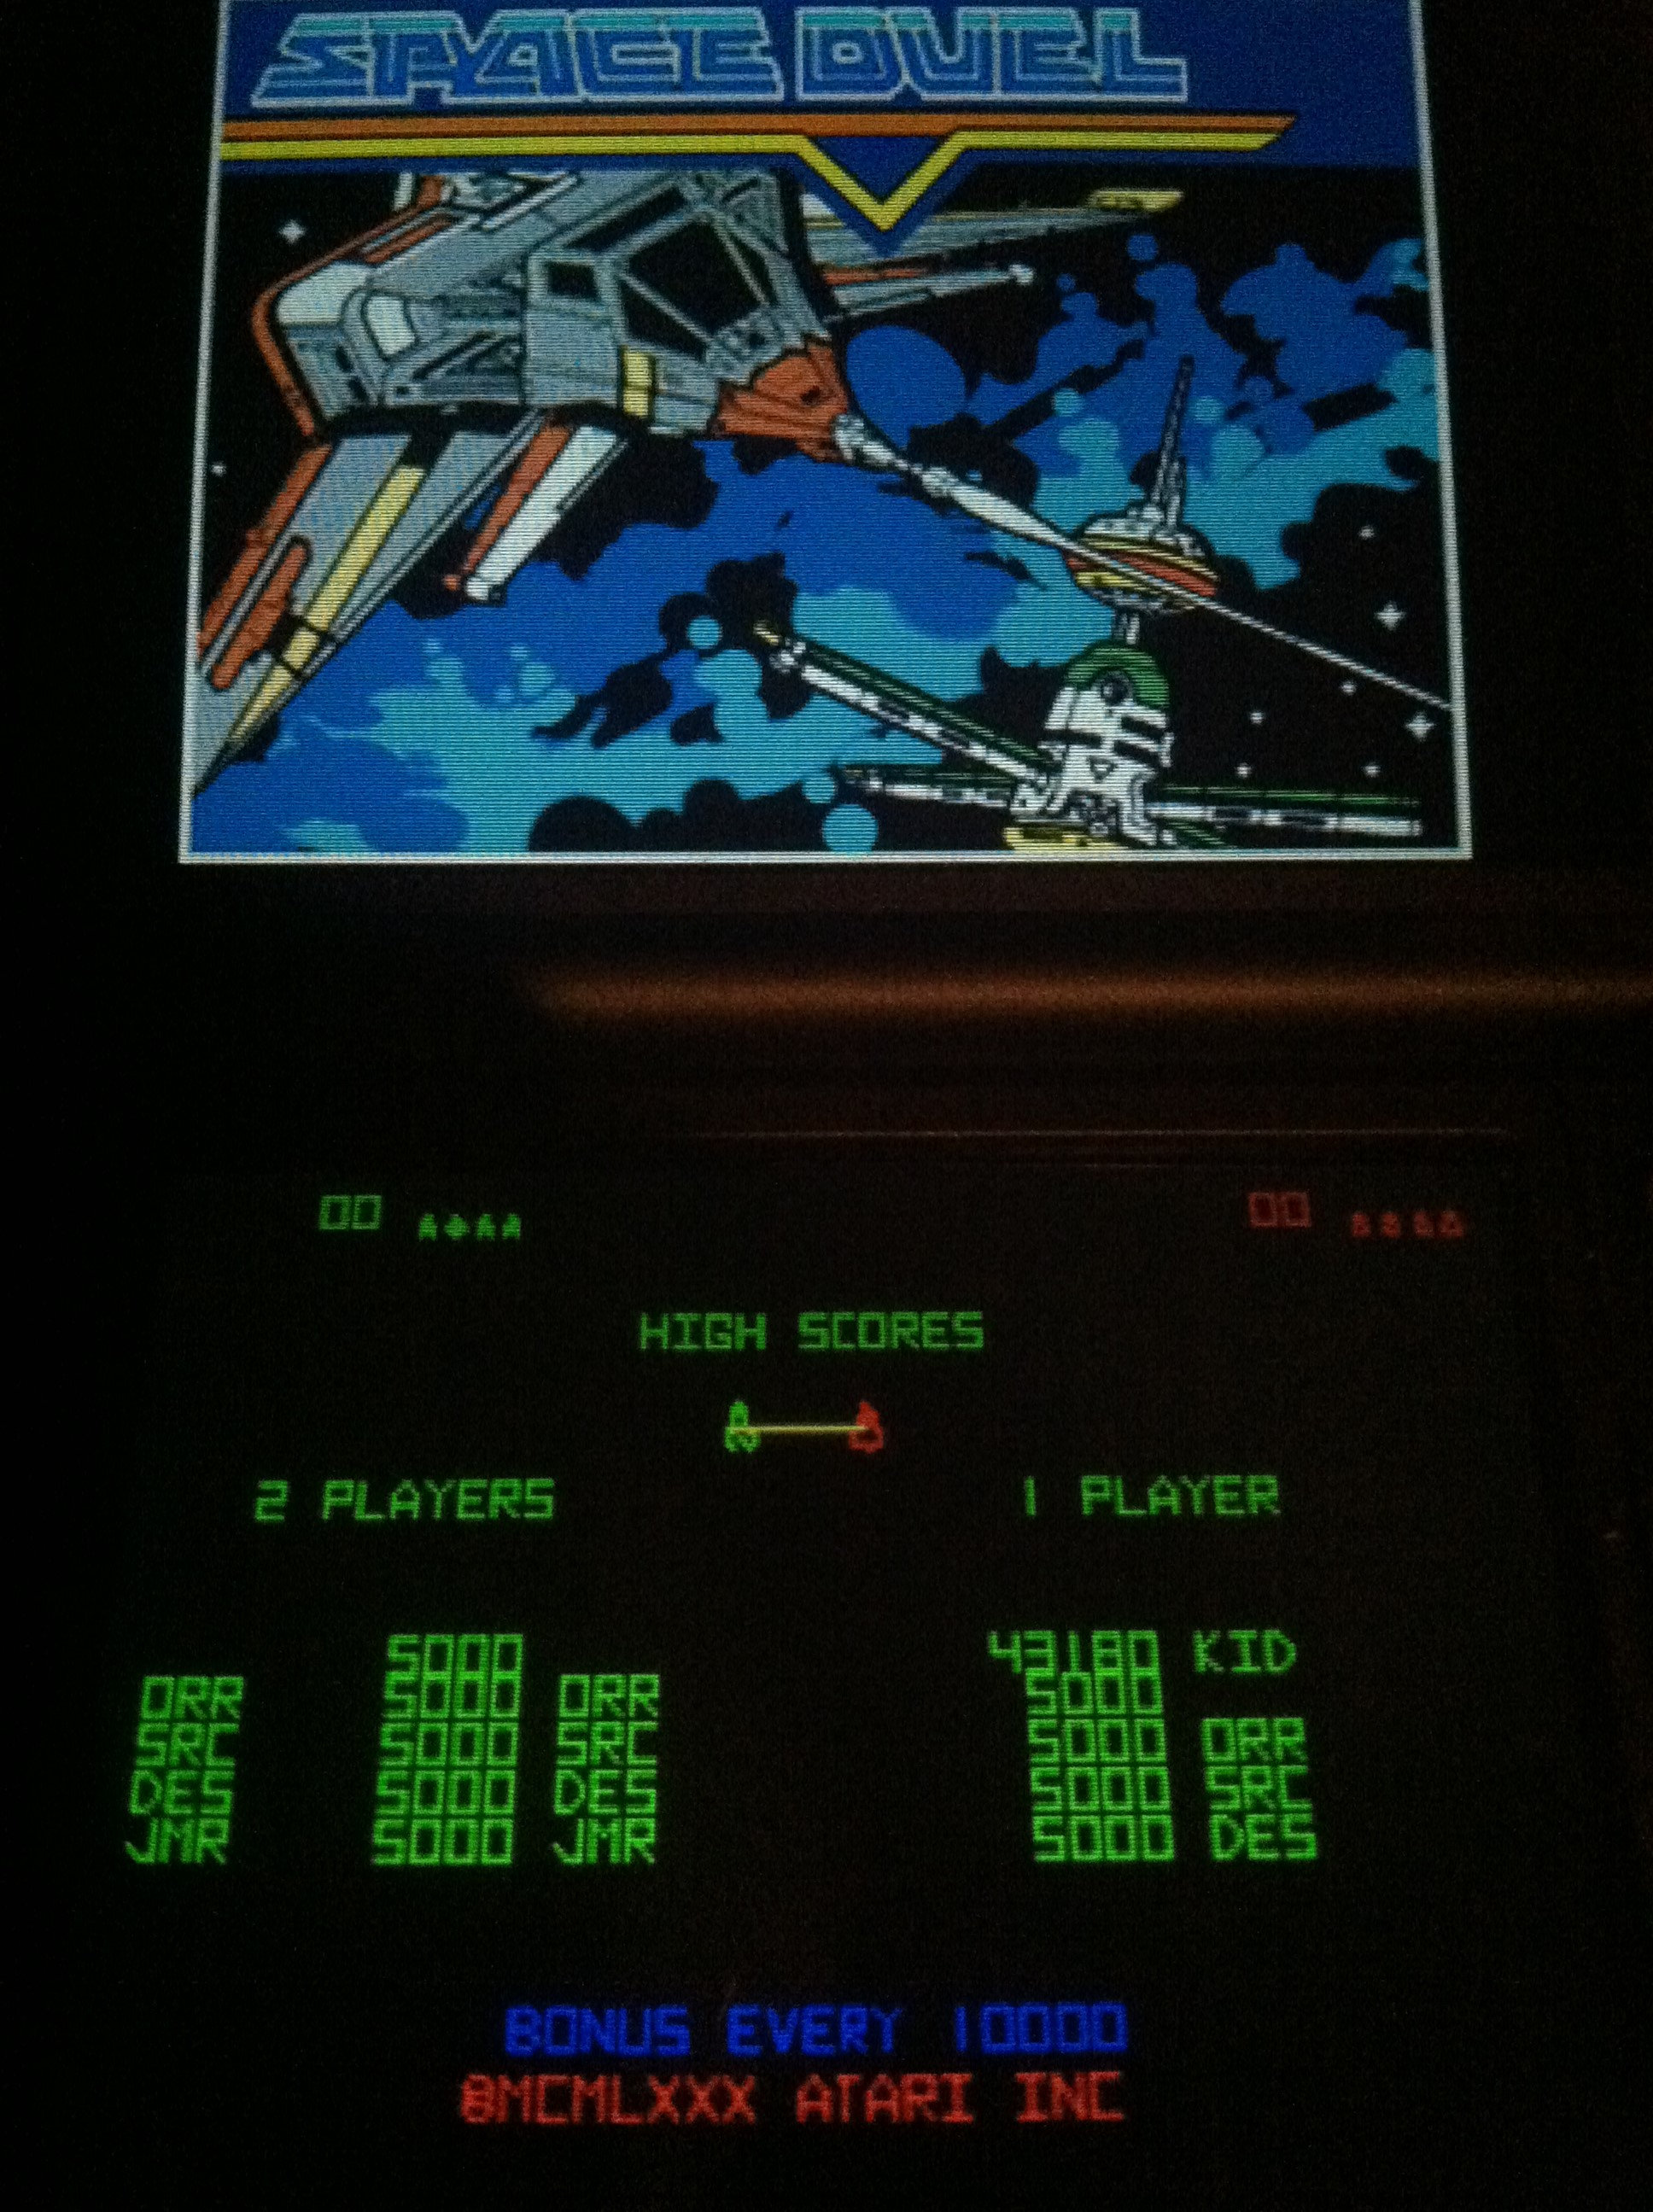 DakotaKid: Atari Greatest Hits: Volume 1: Space Duel [Arcade/Double Ship] (Nintendo DS) 43,180 points on 2017-10-15 02:12:05